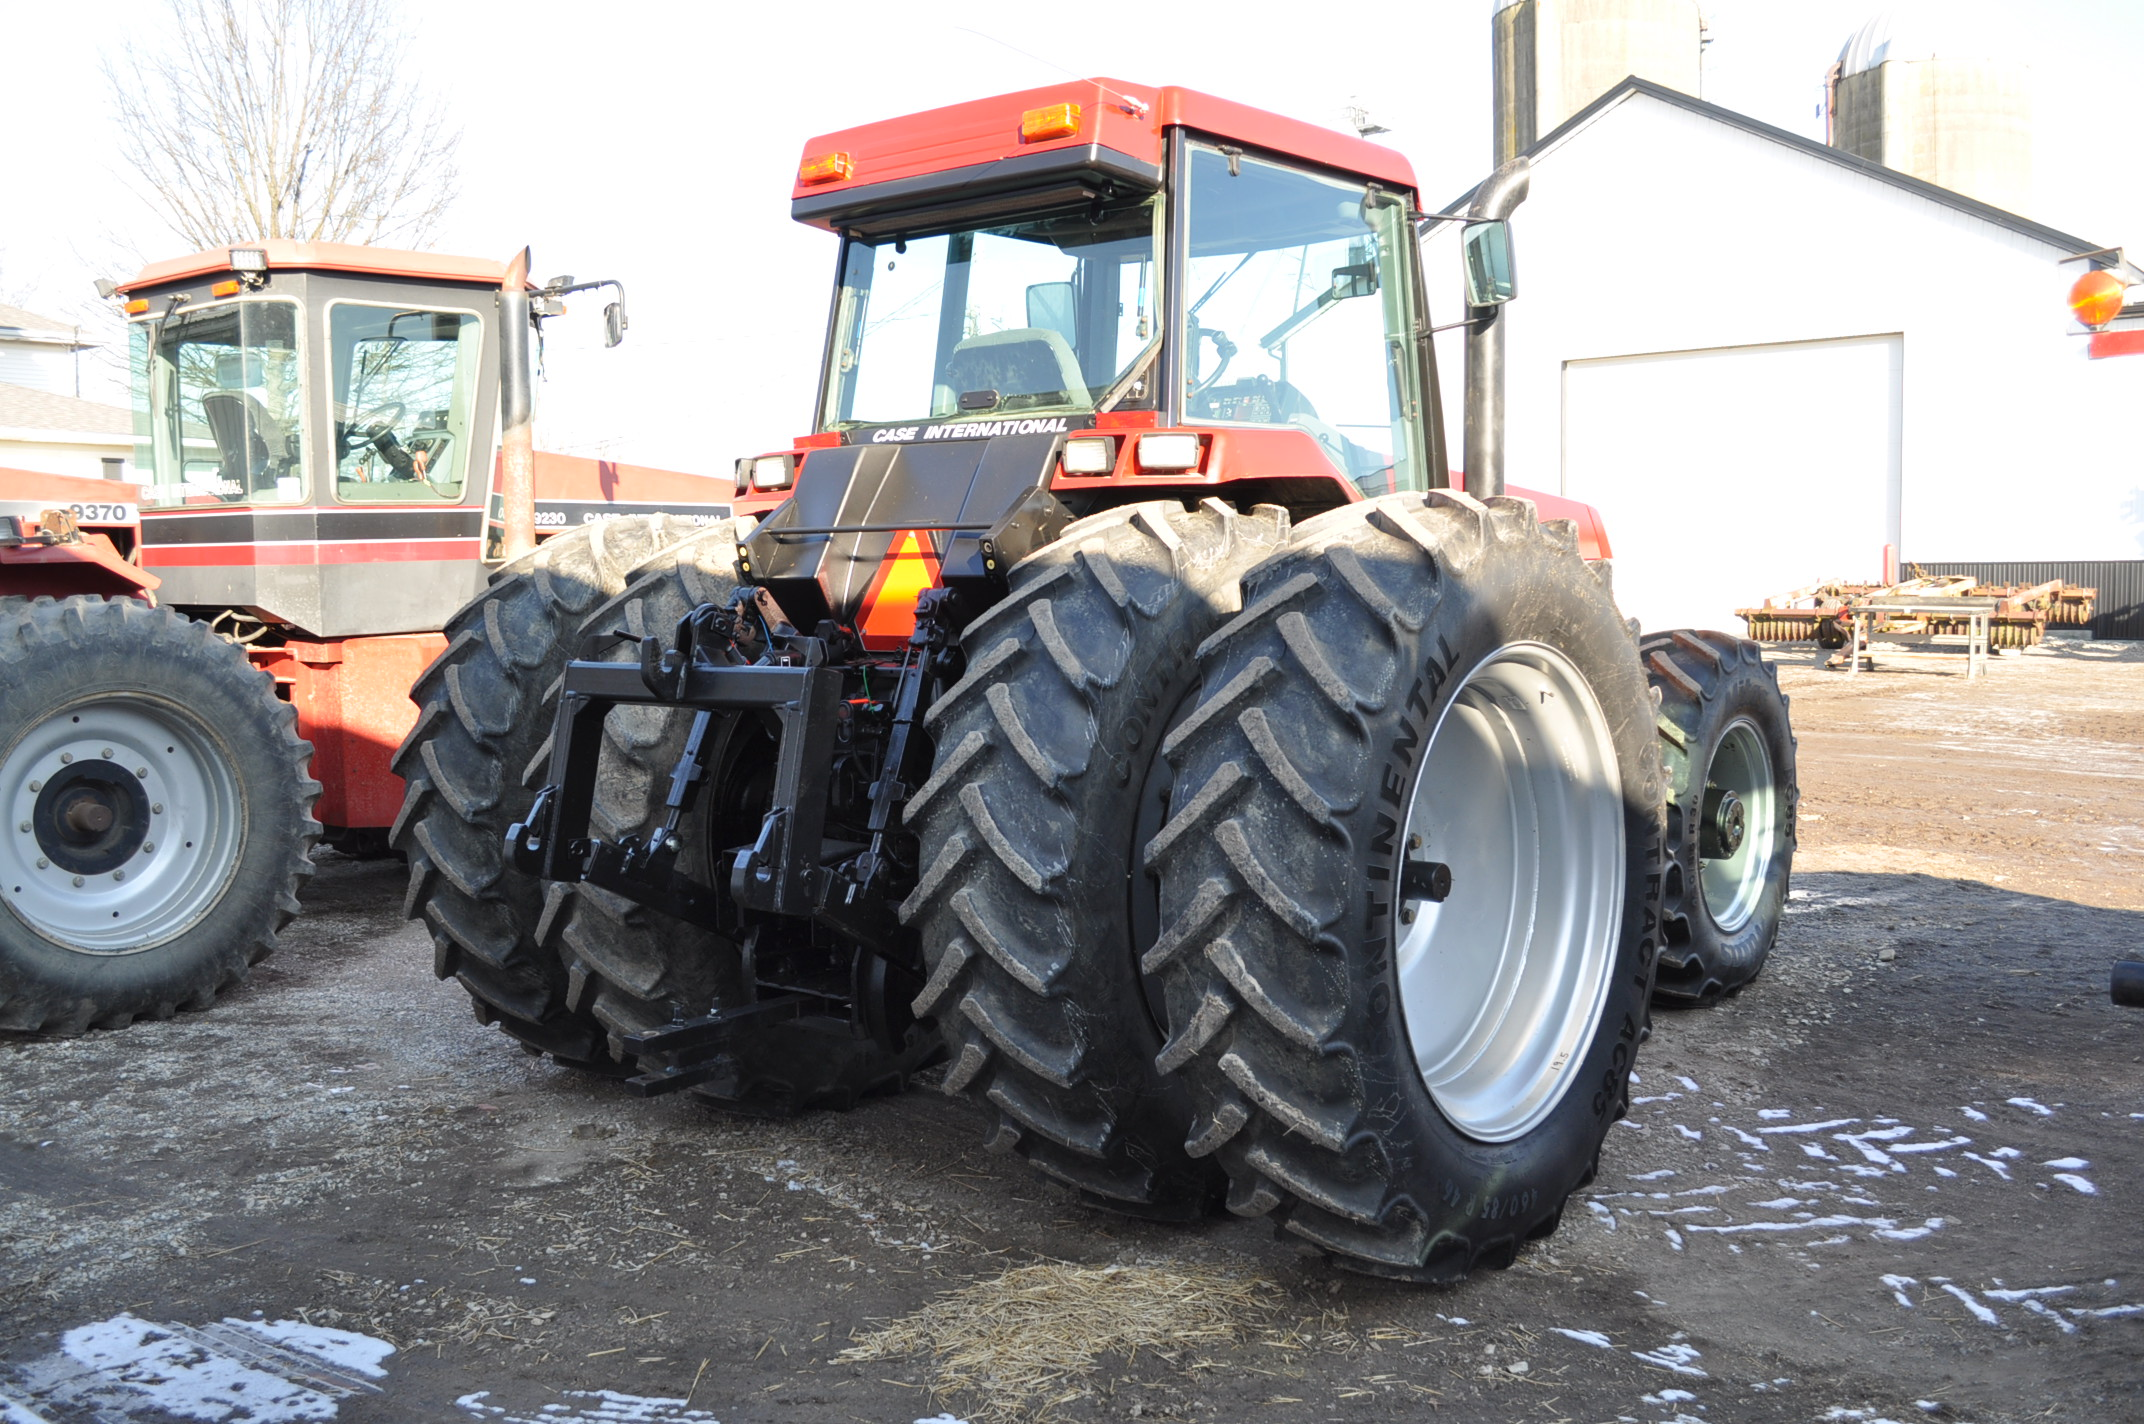 Case IH 7240 MFWD tractor, 460/85R46 rear duals, 420/85R30 front, 18 spd powershift, 4 reverse, - Image 4 of 20